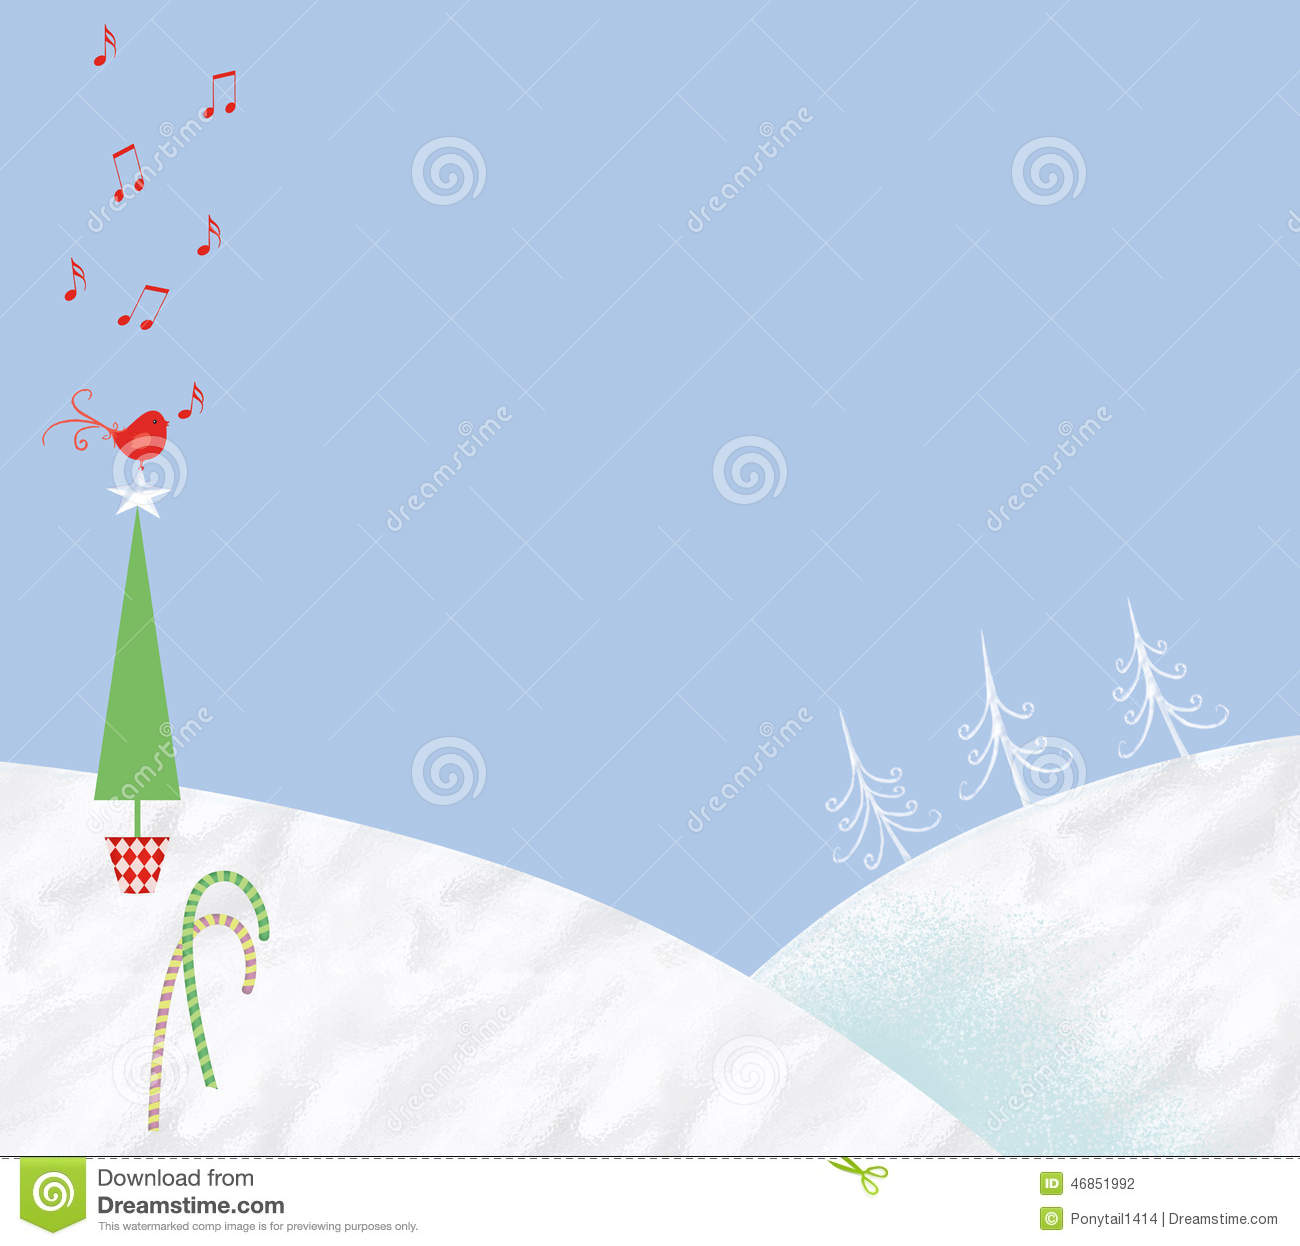 Cute Winter Scene With Small Red Bird Stock Illustration   Image